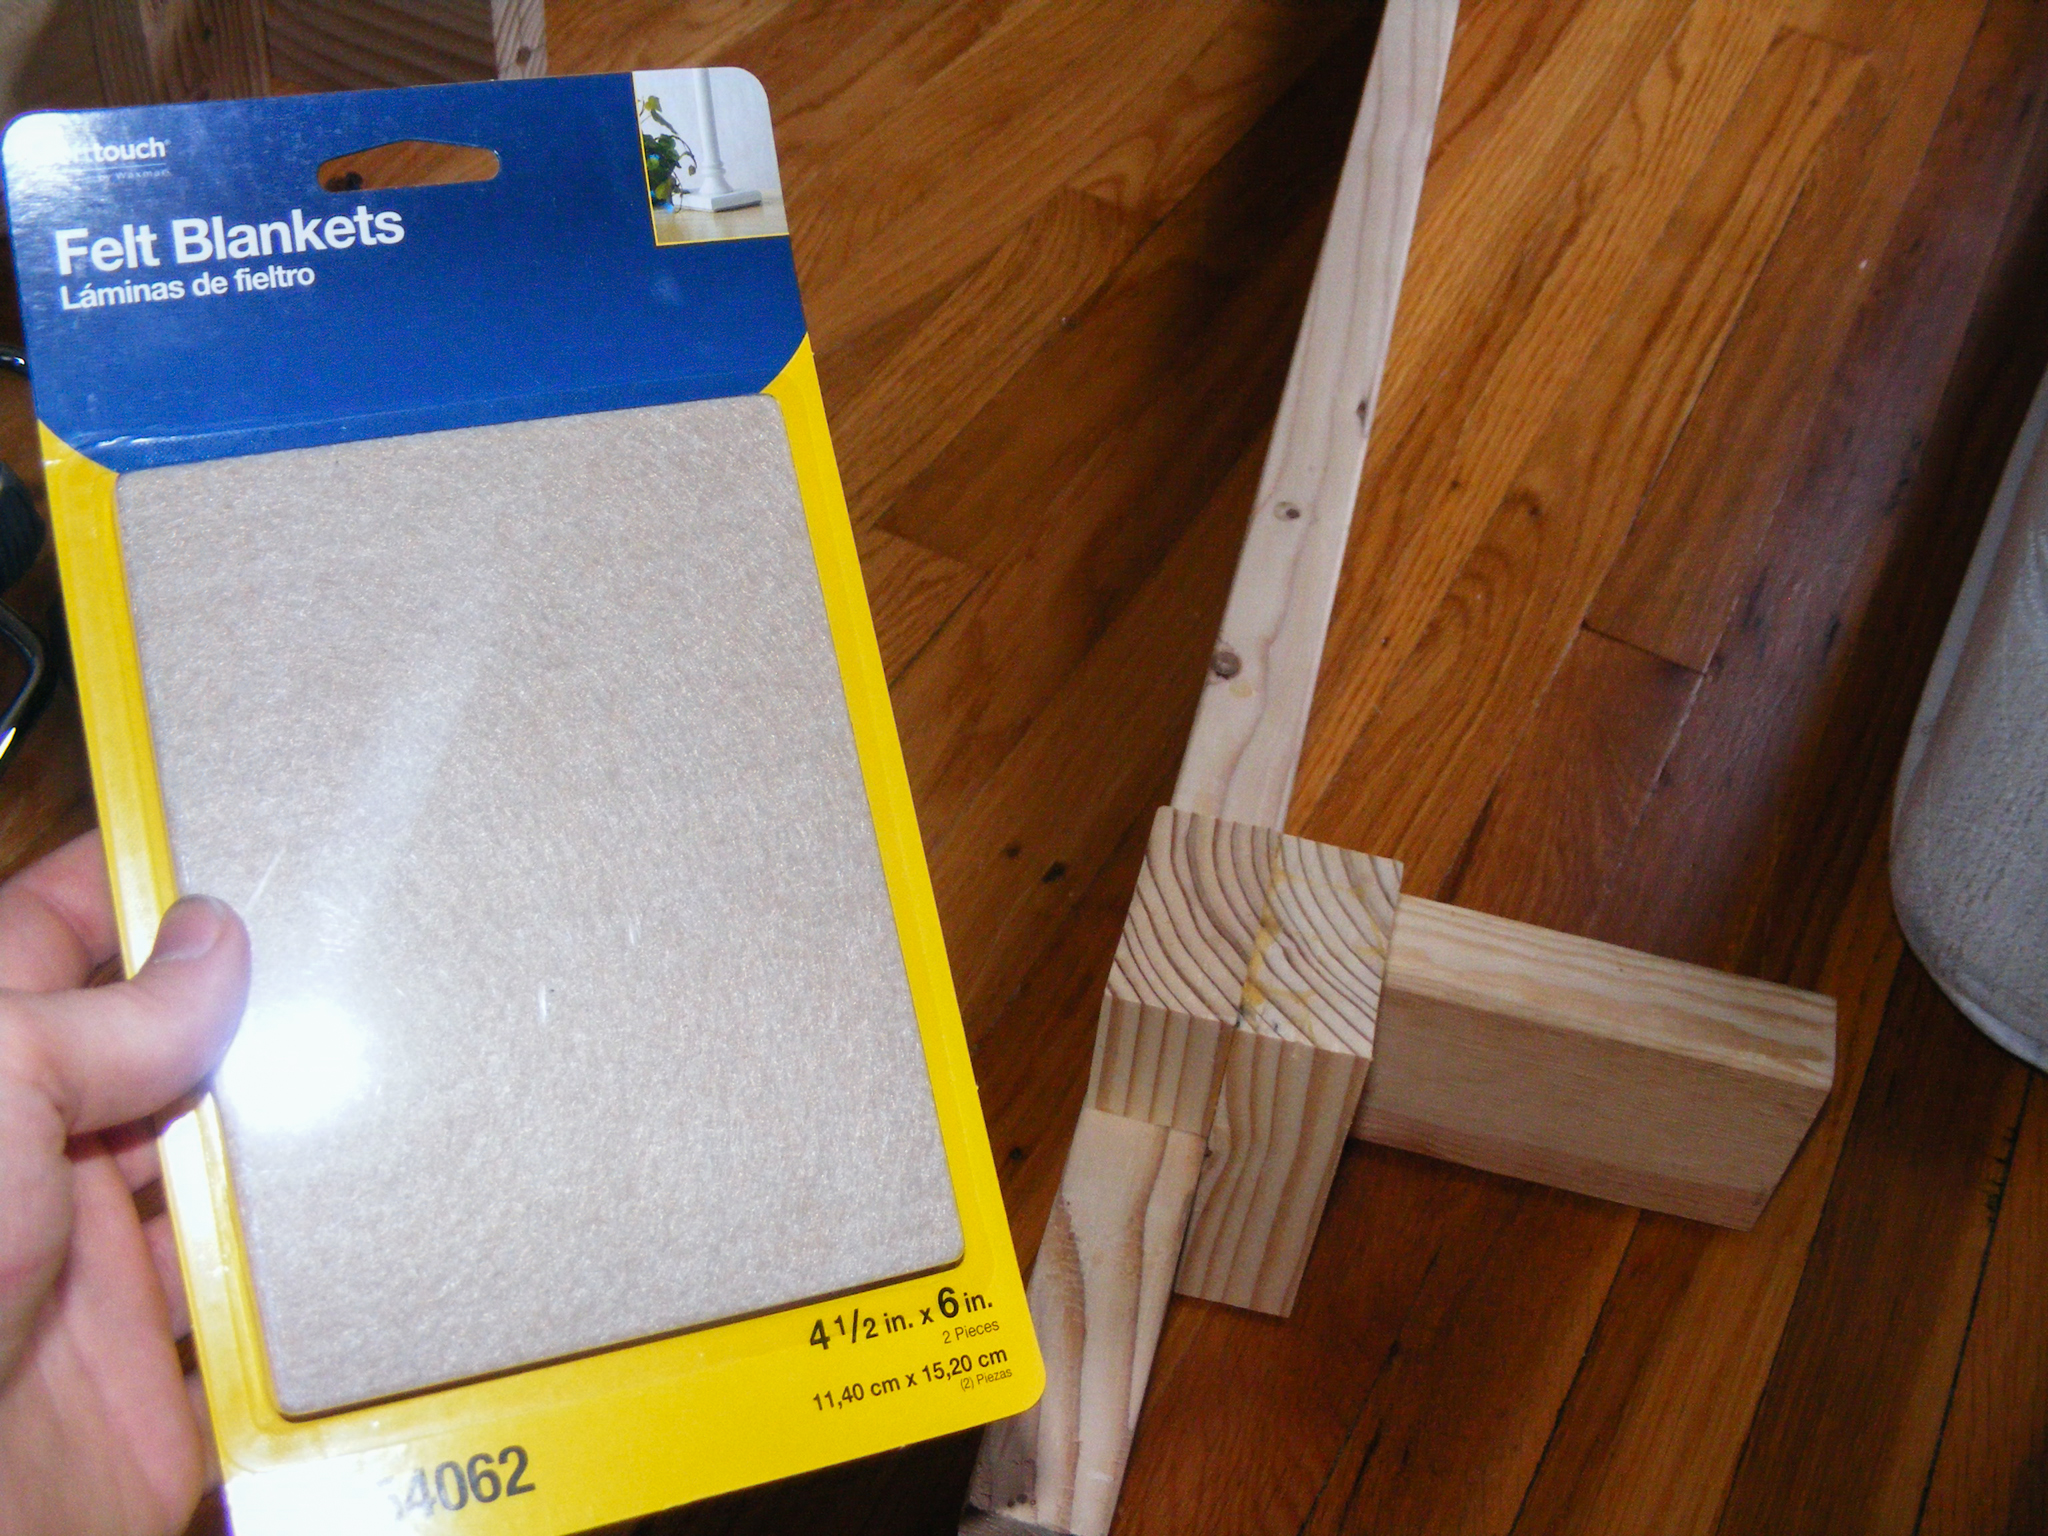 I used these sticky felt pads to protect my floor from the bedlegs.